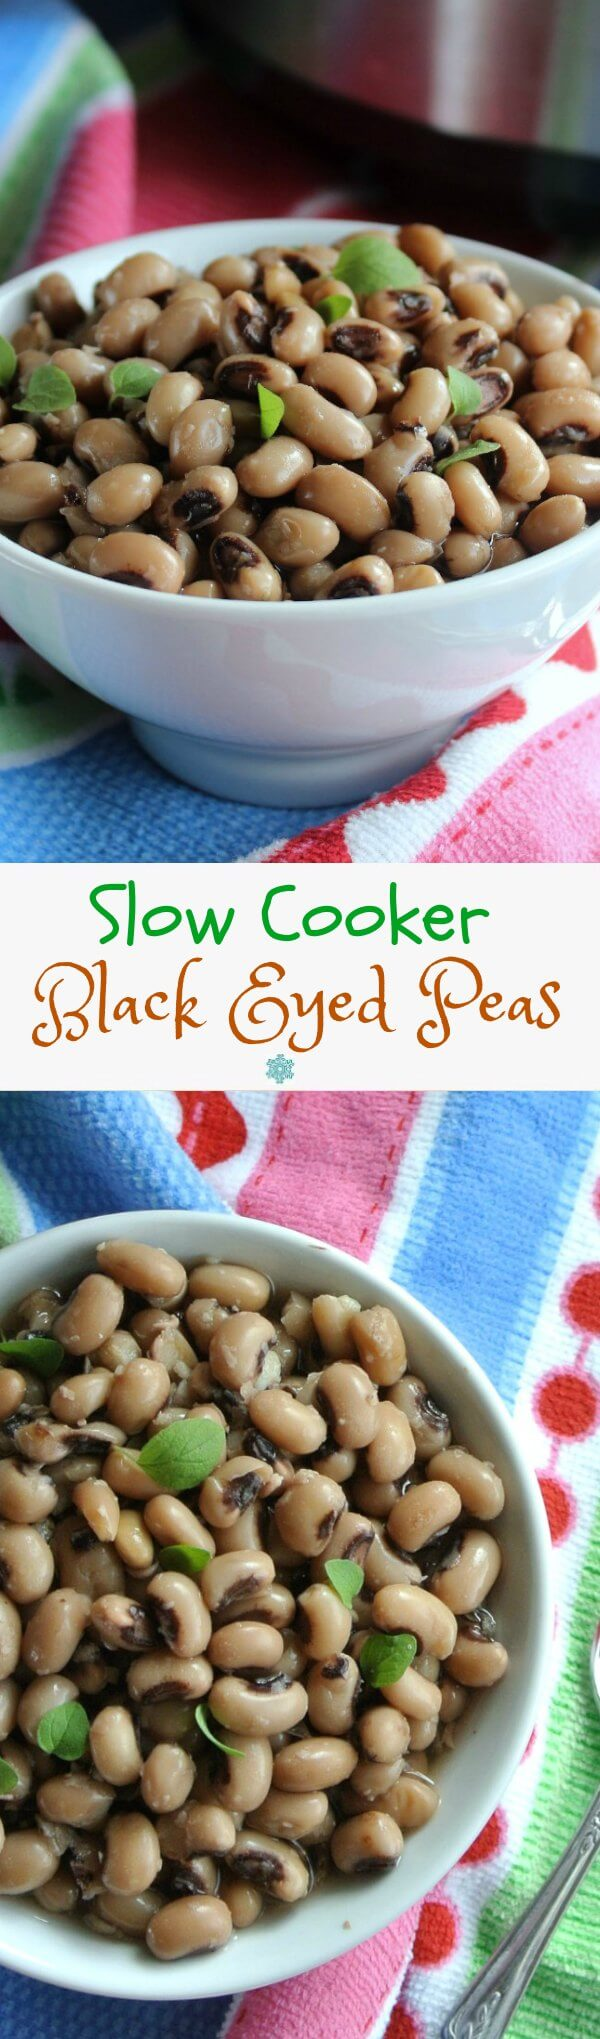 Black Eyed Peas are easy from the slow cooker.  A traditional dish to have on New Year's Day.  Every bean you eat is a lucky day. Really!